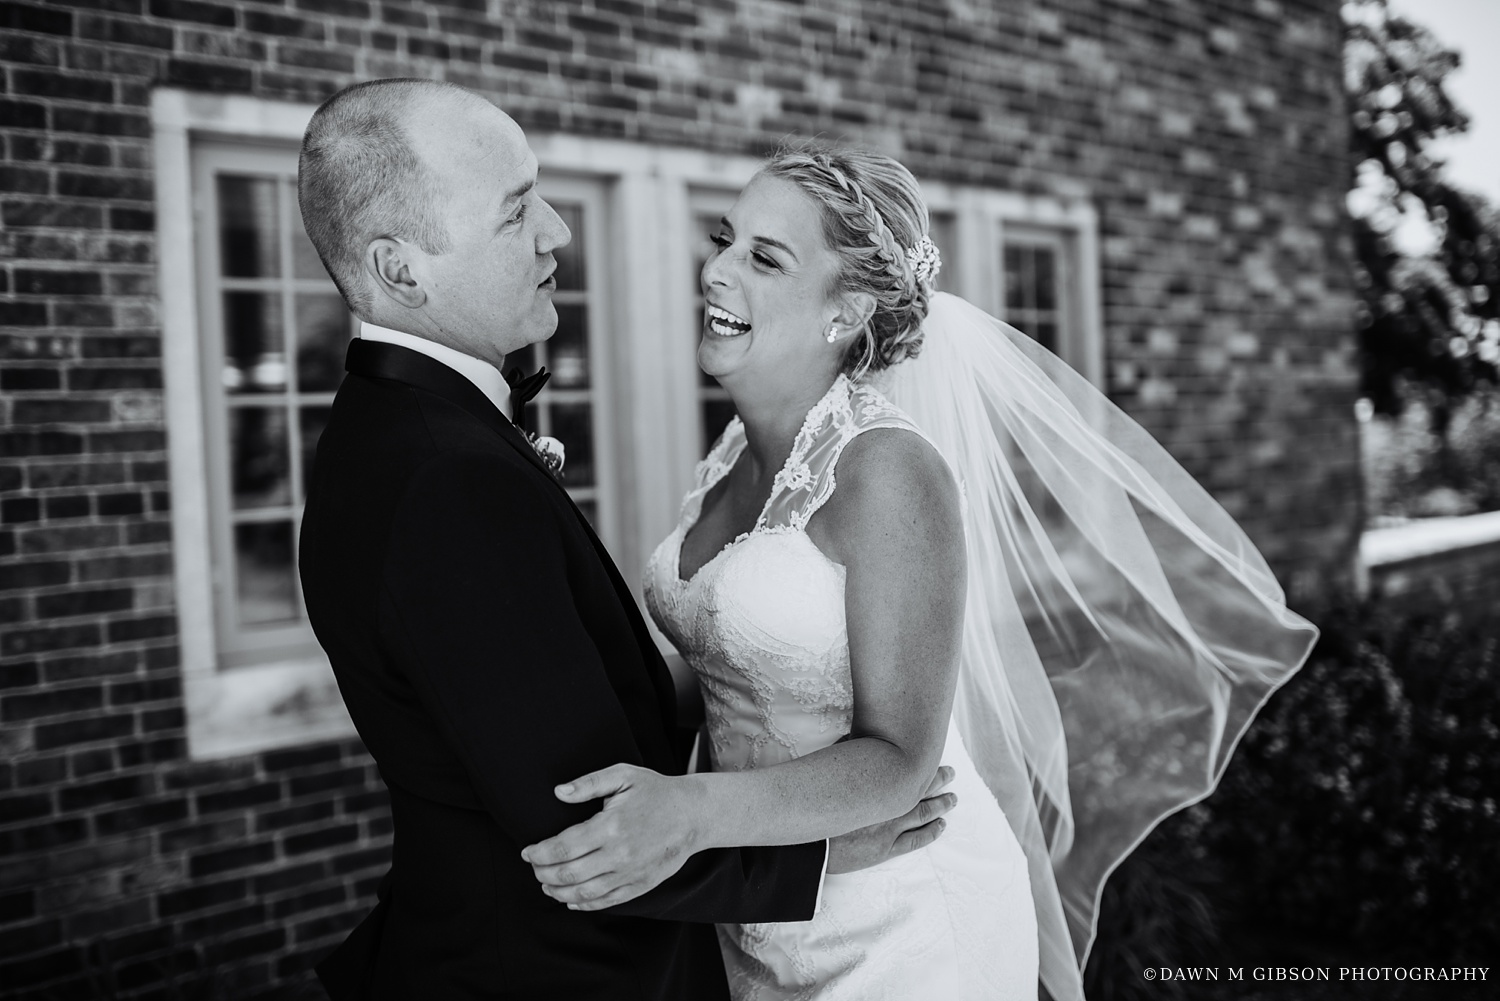 buffalo_wny_rochester_wedding_photographer_dawnmgibsonphotography_strathallan_colgate_rochester_divinity_rochester_wedding_venues_0017.jpg